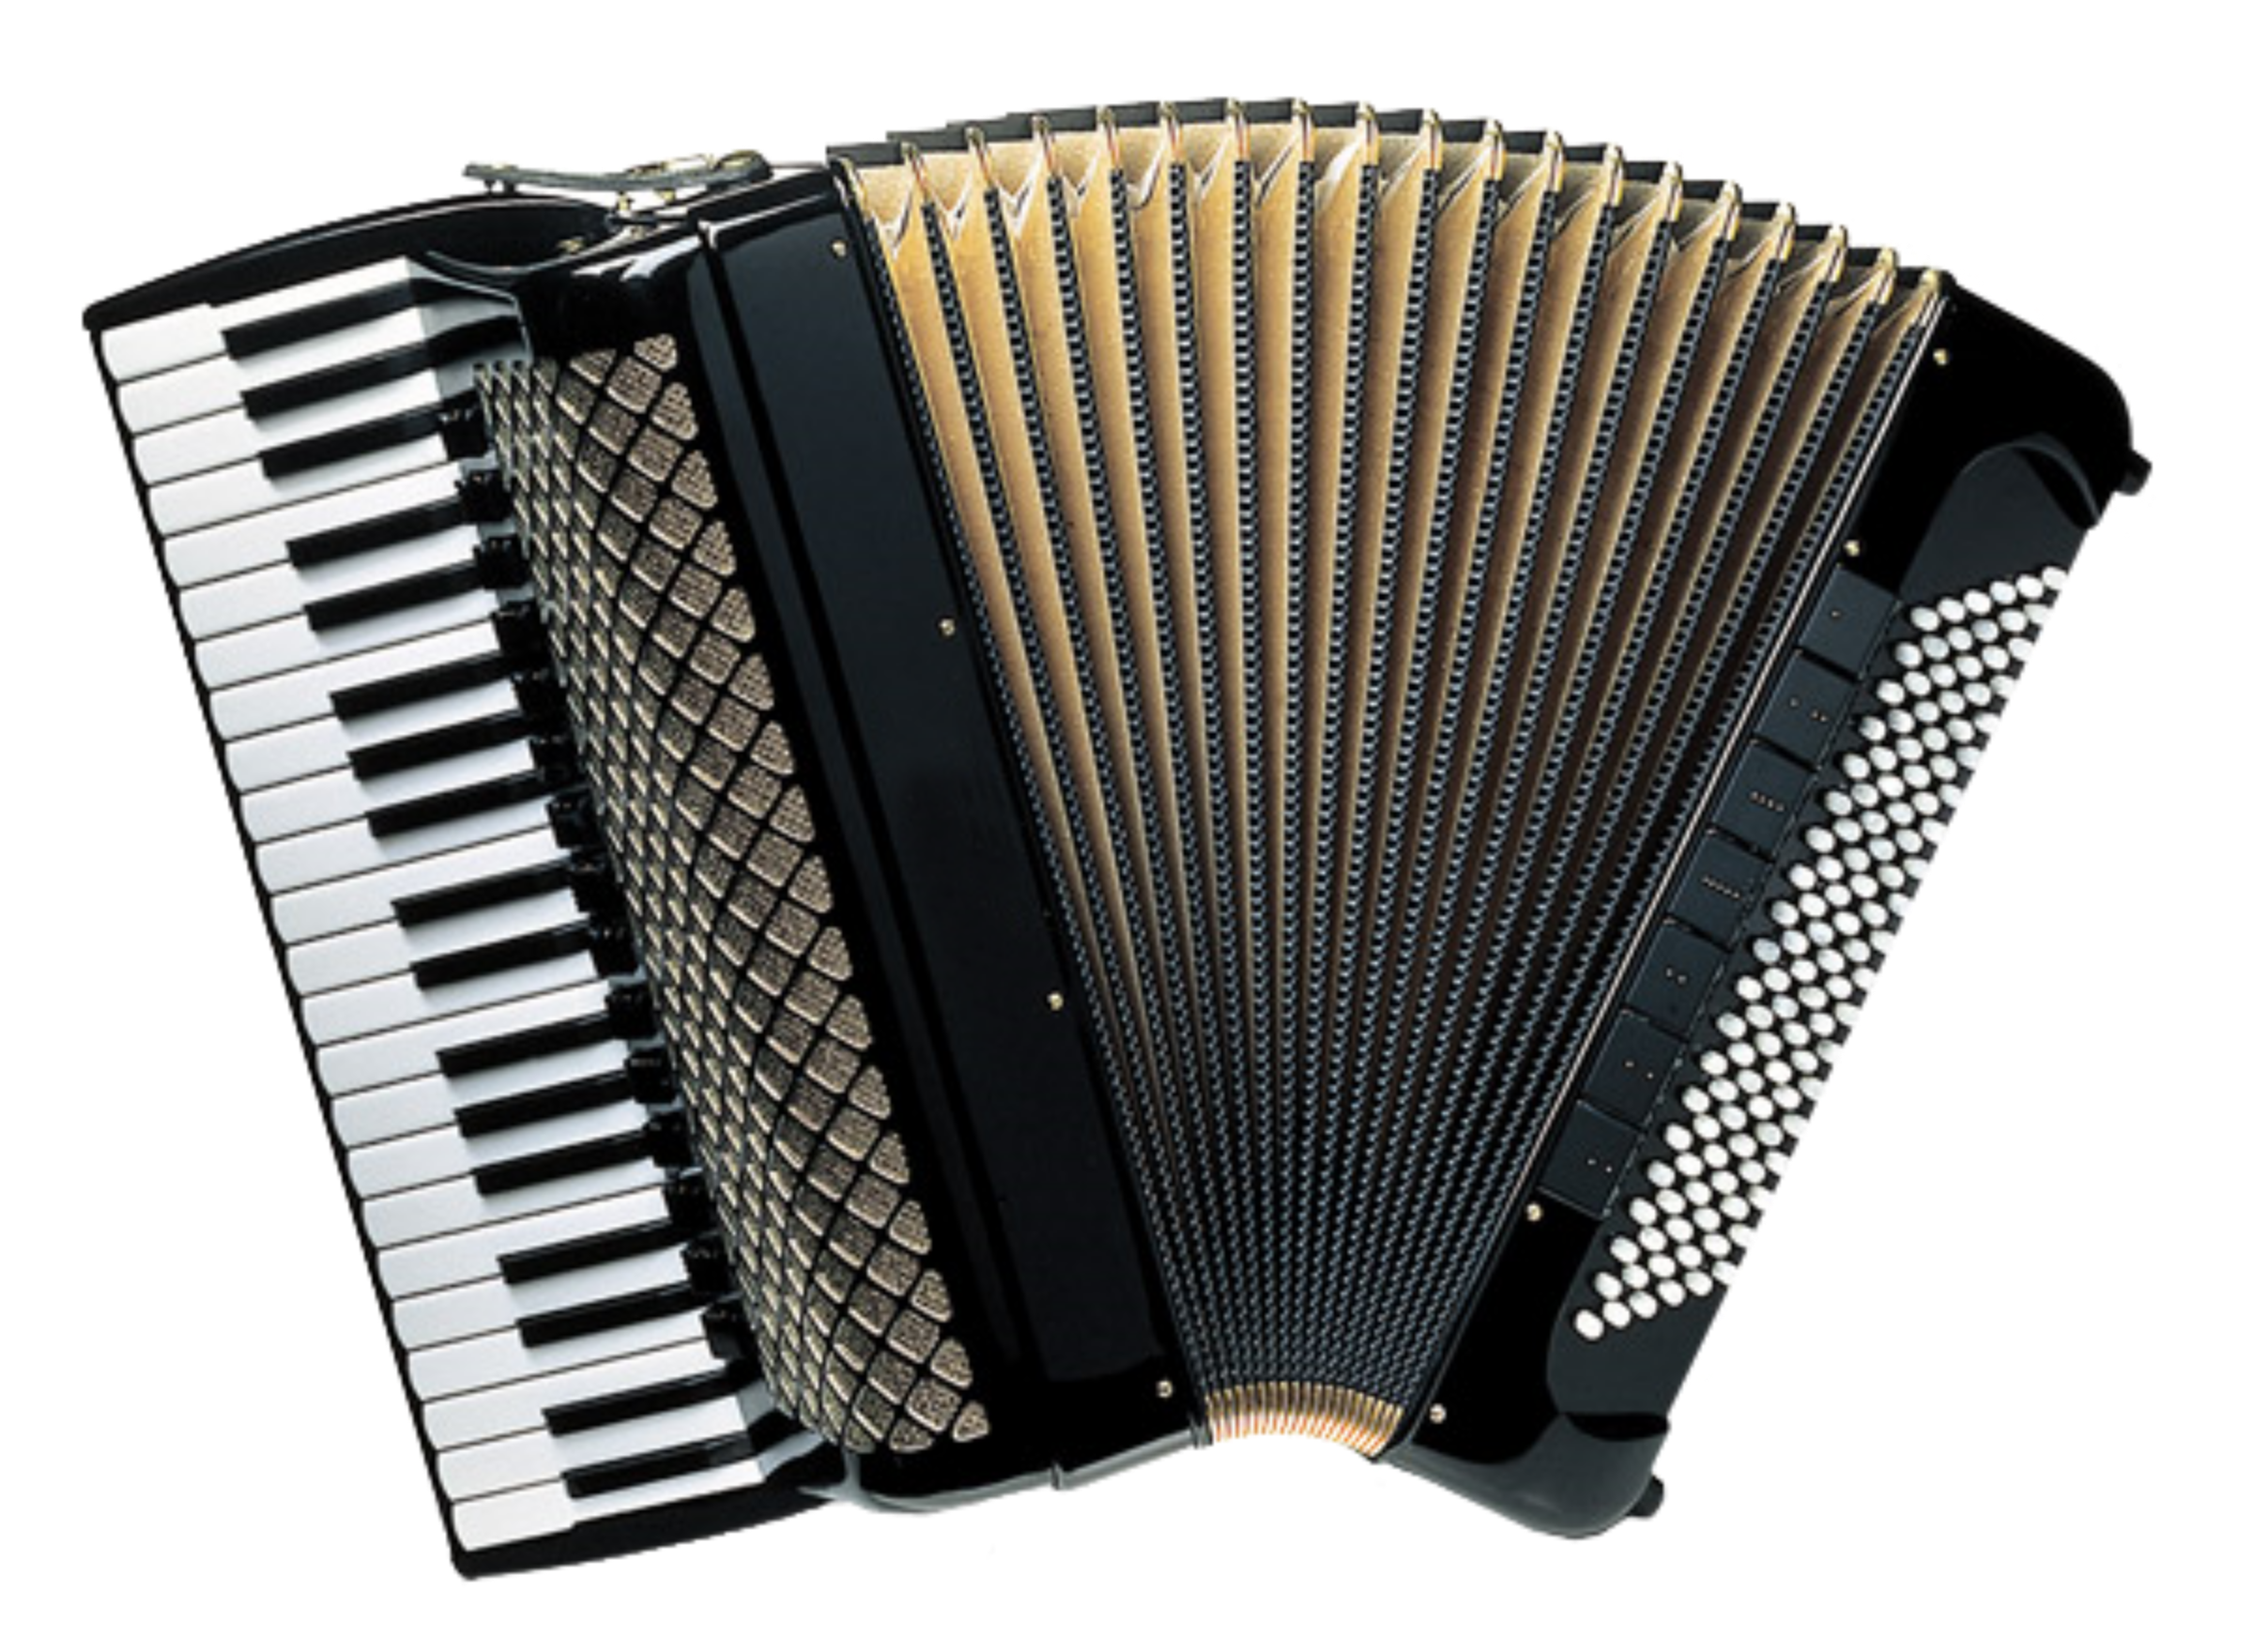 piano accordion vector clipart image free stock photo accordion clip art png accordion clip art black and white